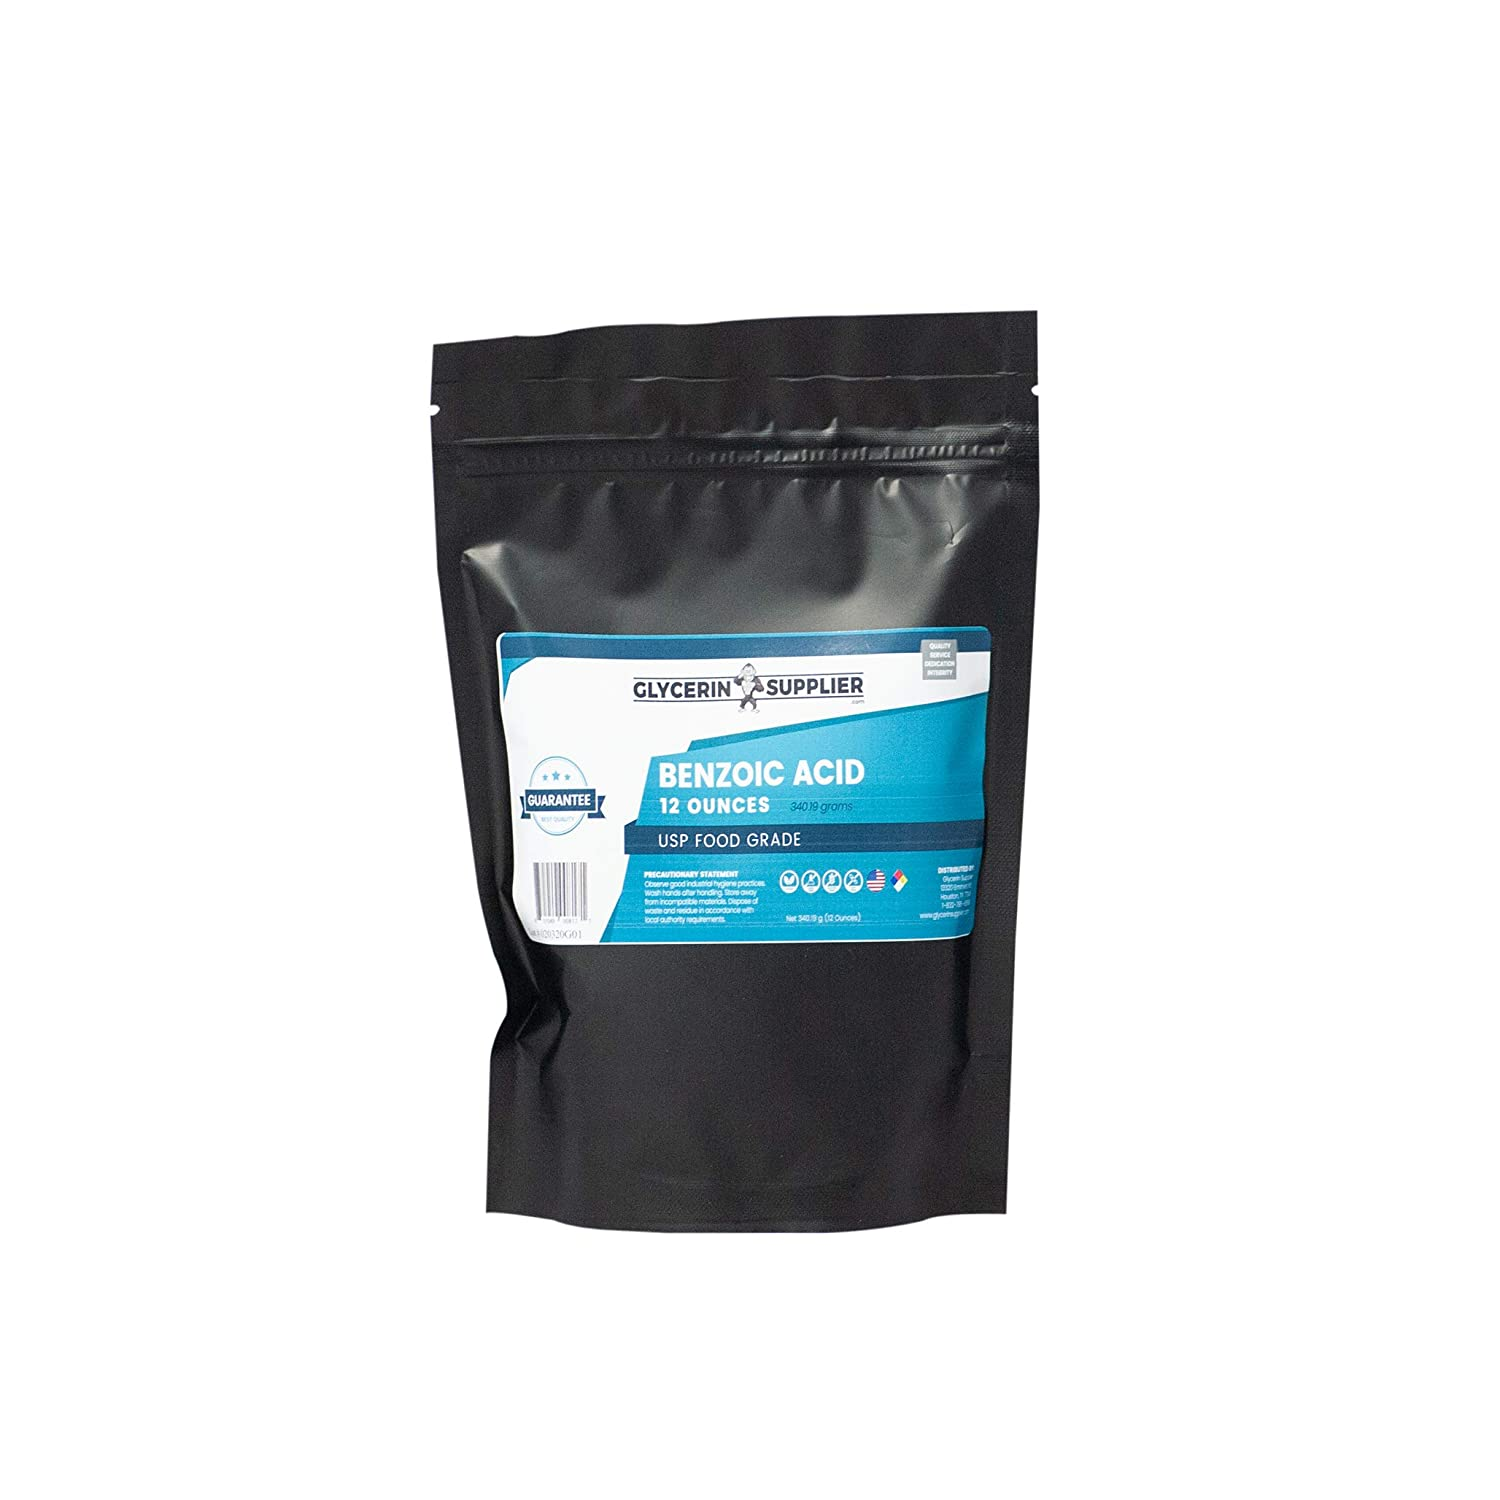 Benzoic Acid, 12 Oz. - USP Food and Pharmaceutical Grade - Highest Purity